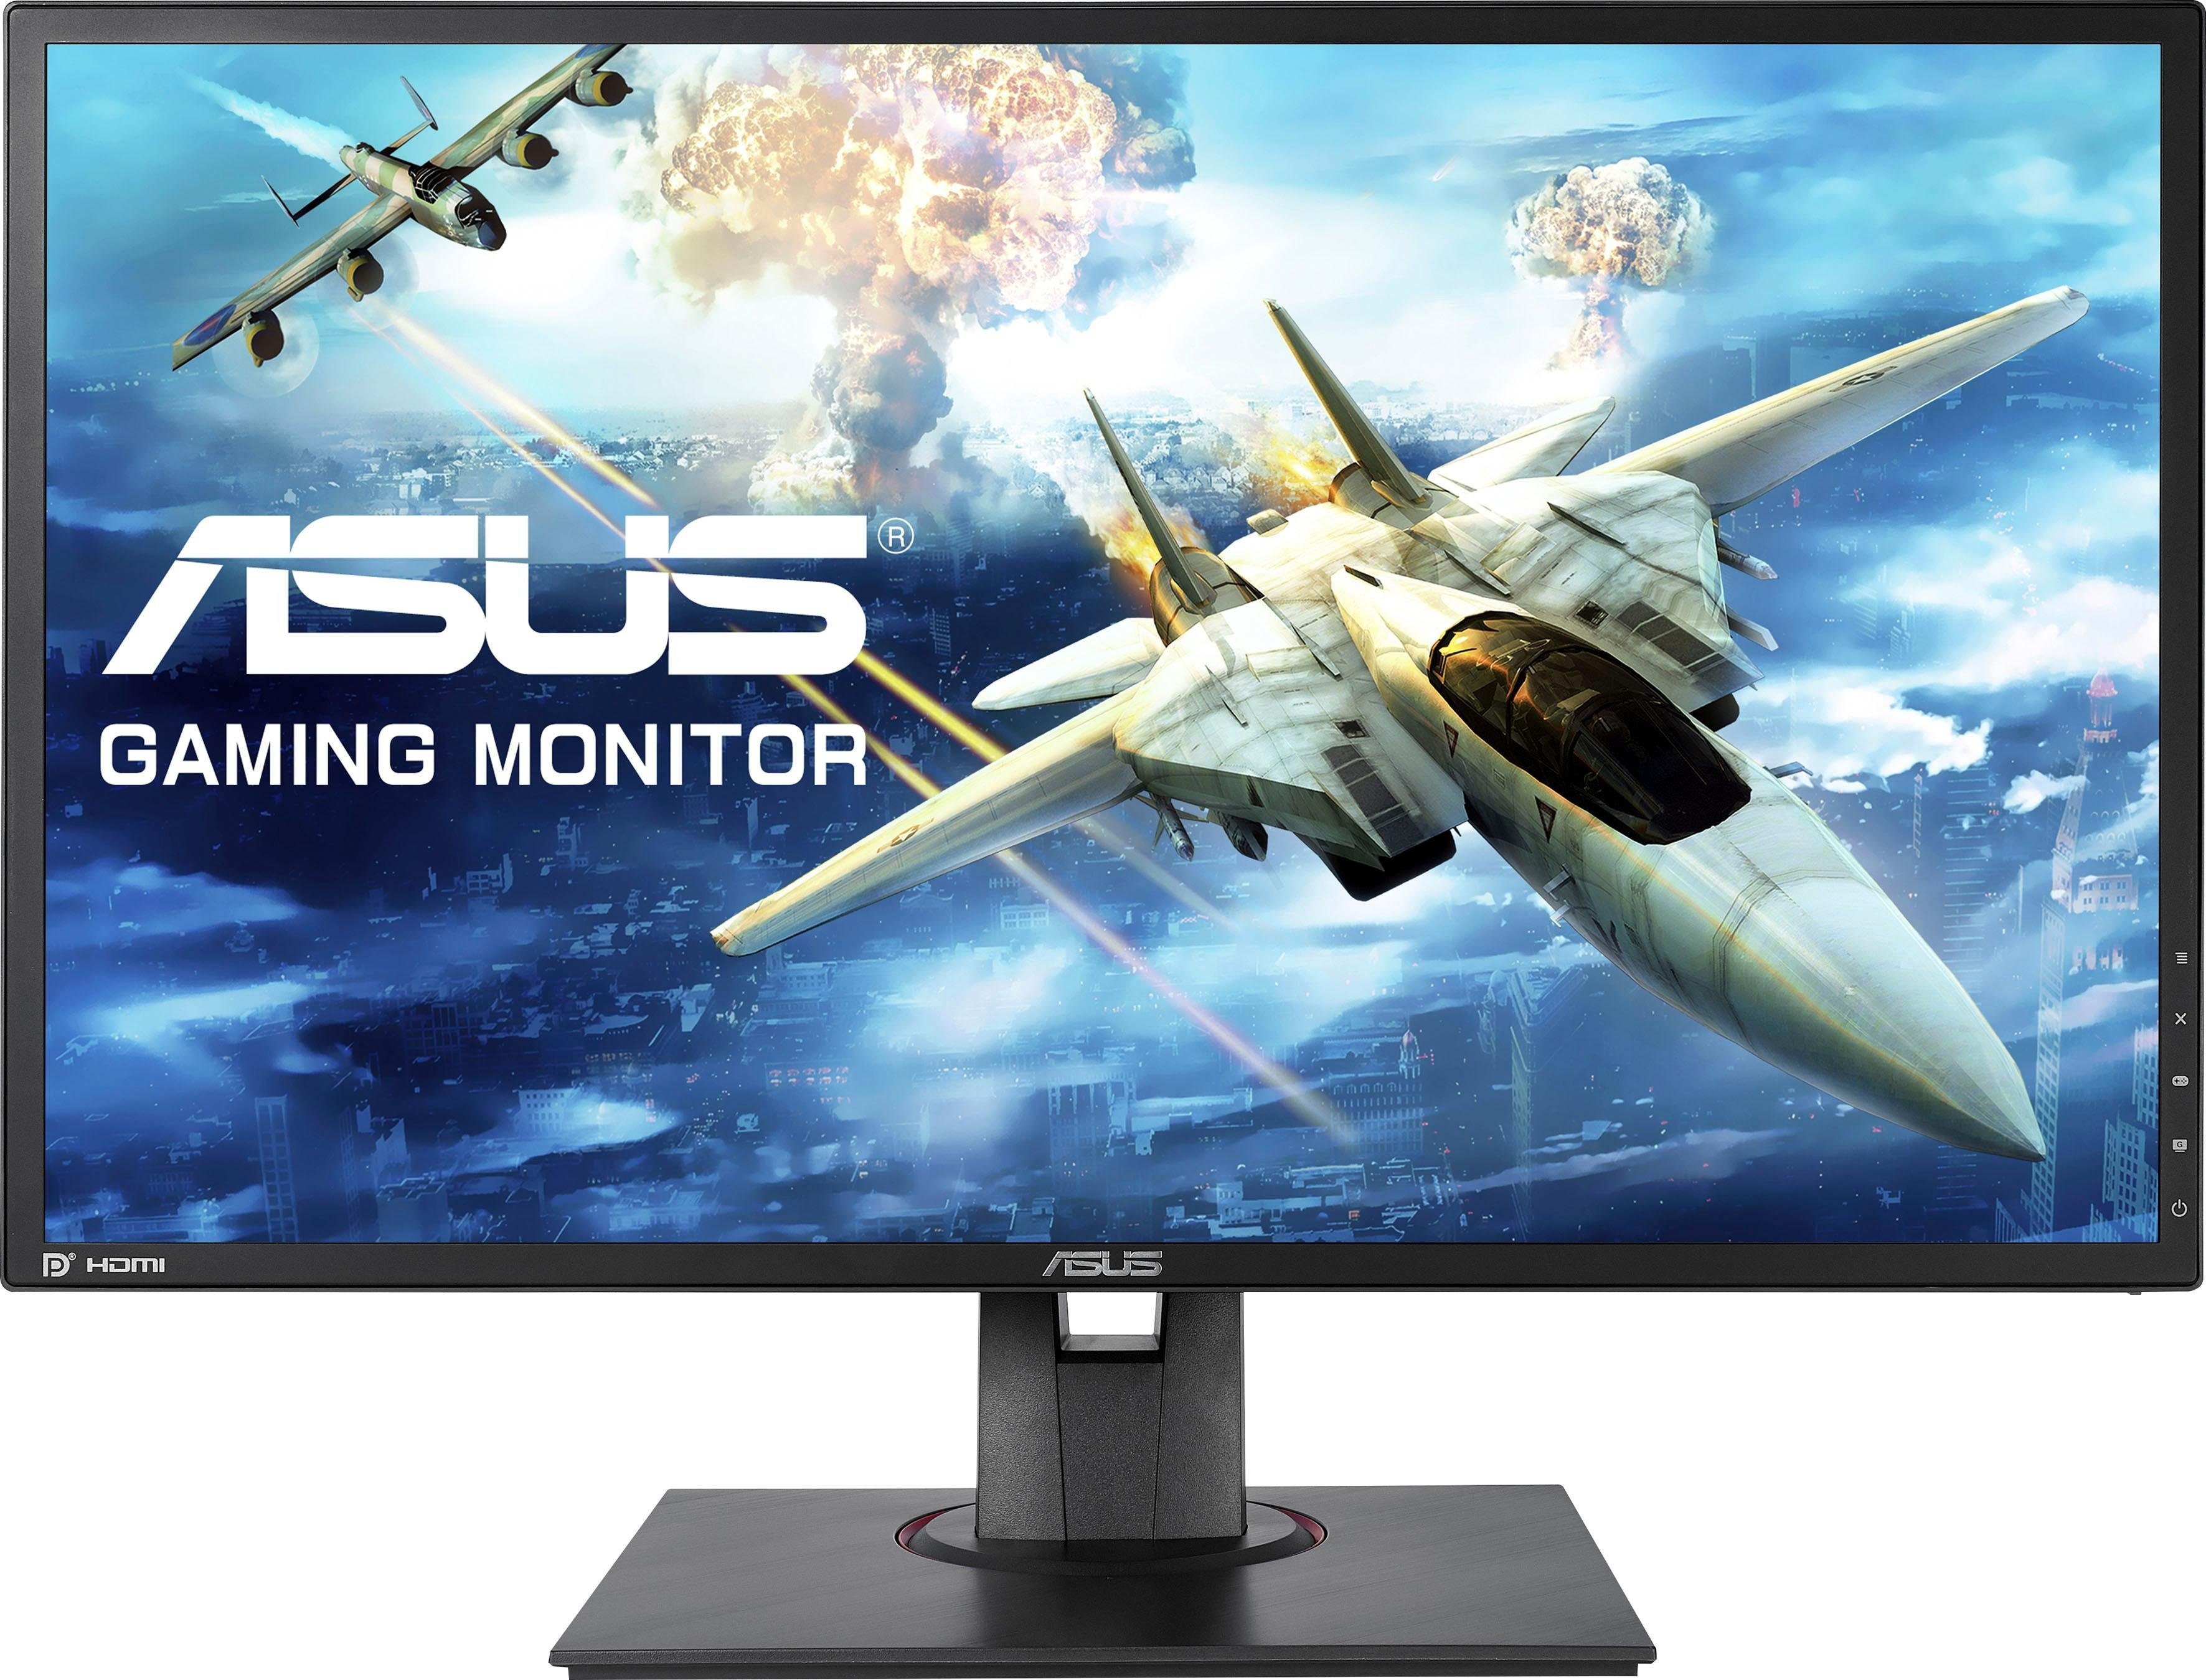 Asus MG248QE Gaming-LED-Monitor (1920 x 1080 Pixel, Full HD, 1 ms Reaktionszeit, 144 Hz)